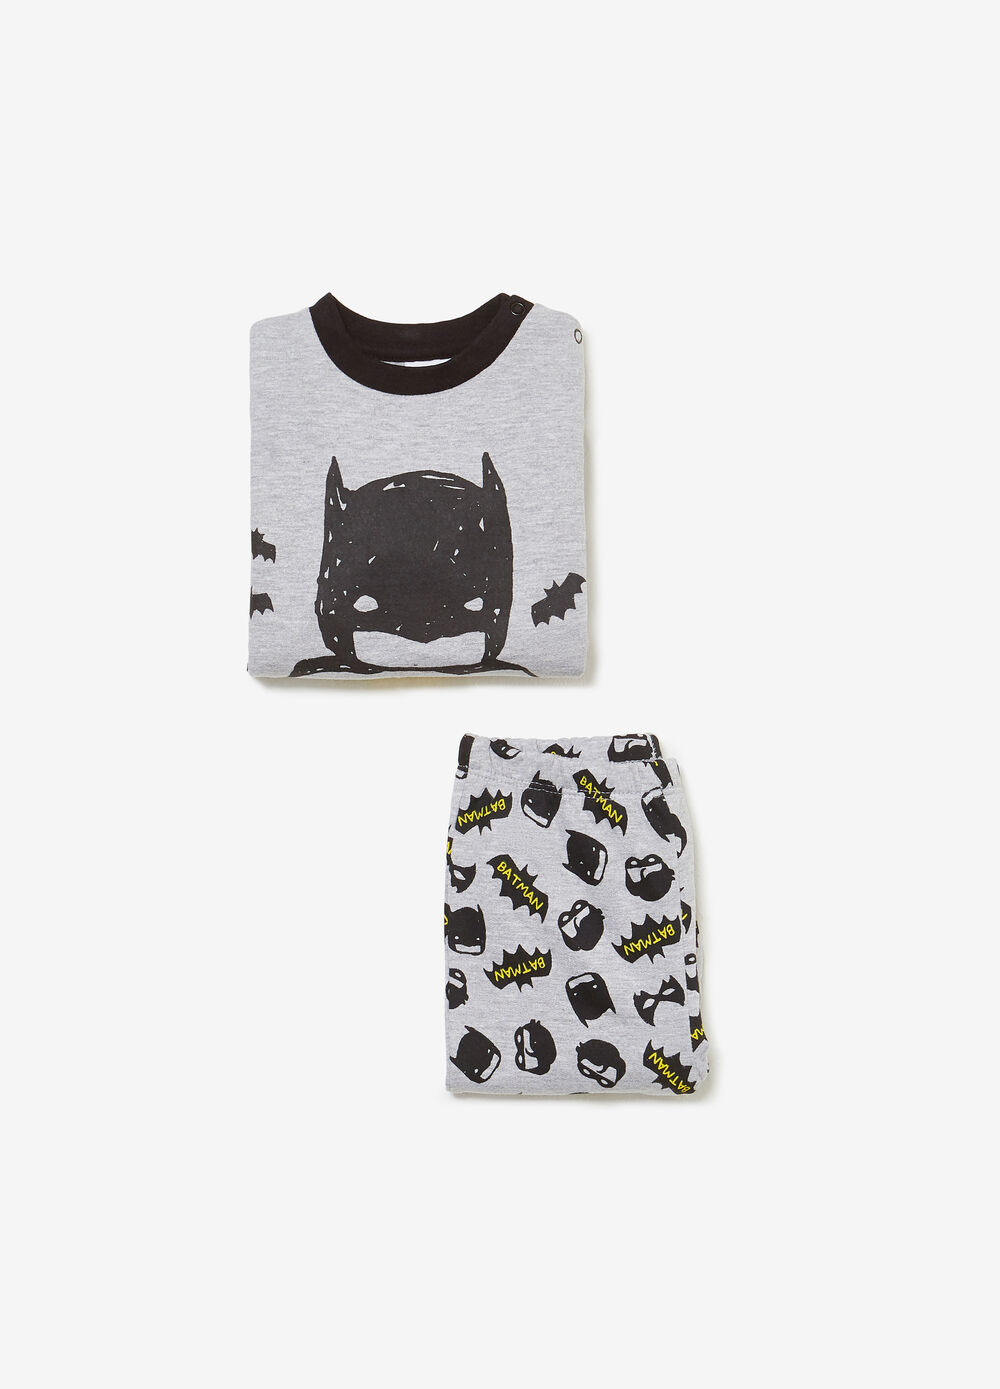 100% cotton pyjamas with Batman print